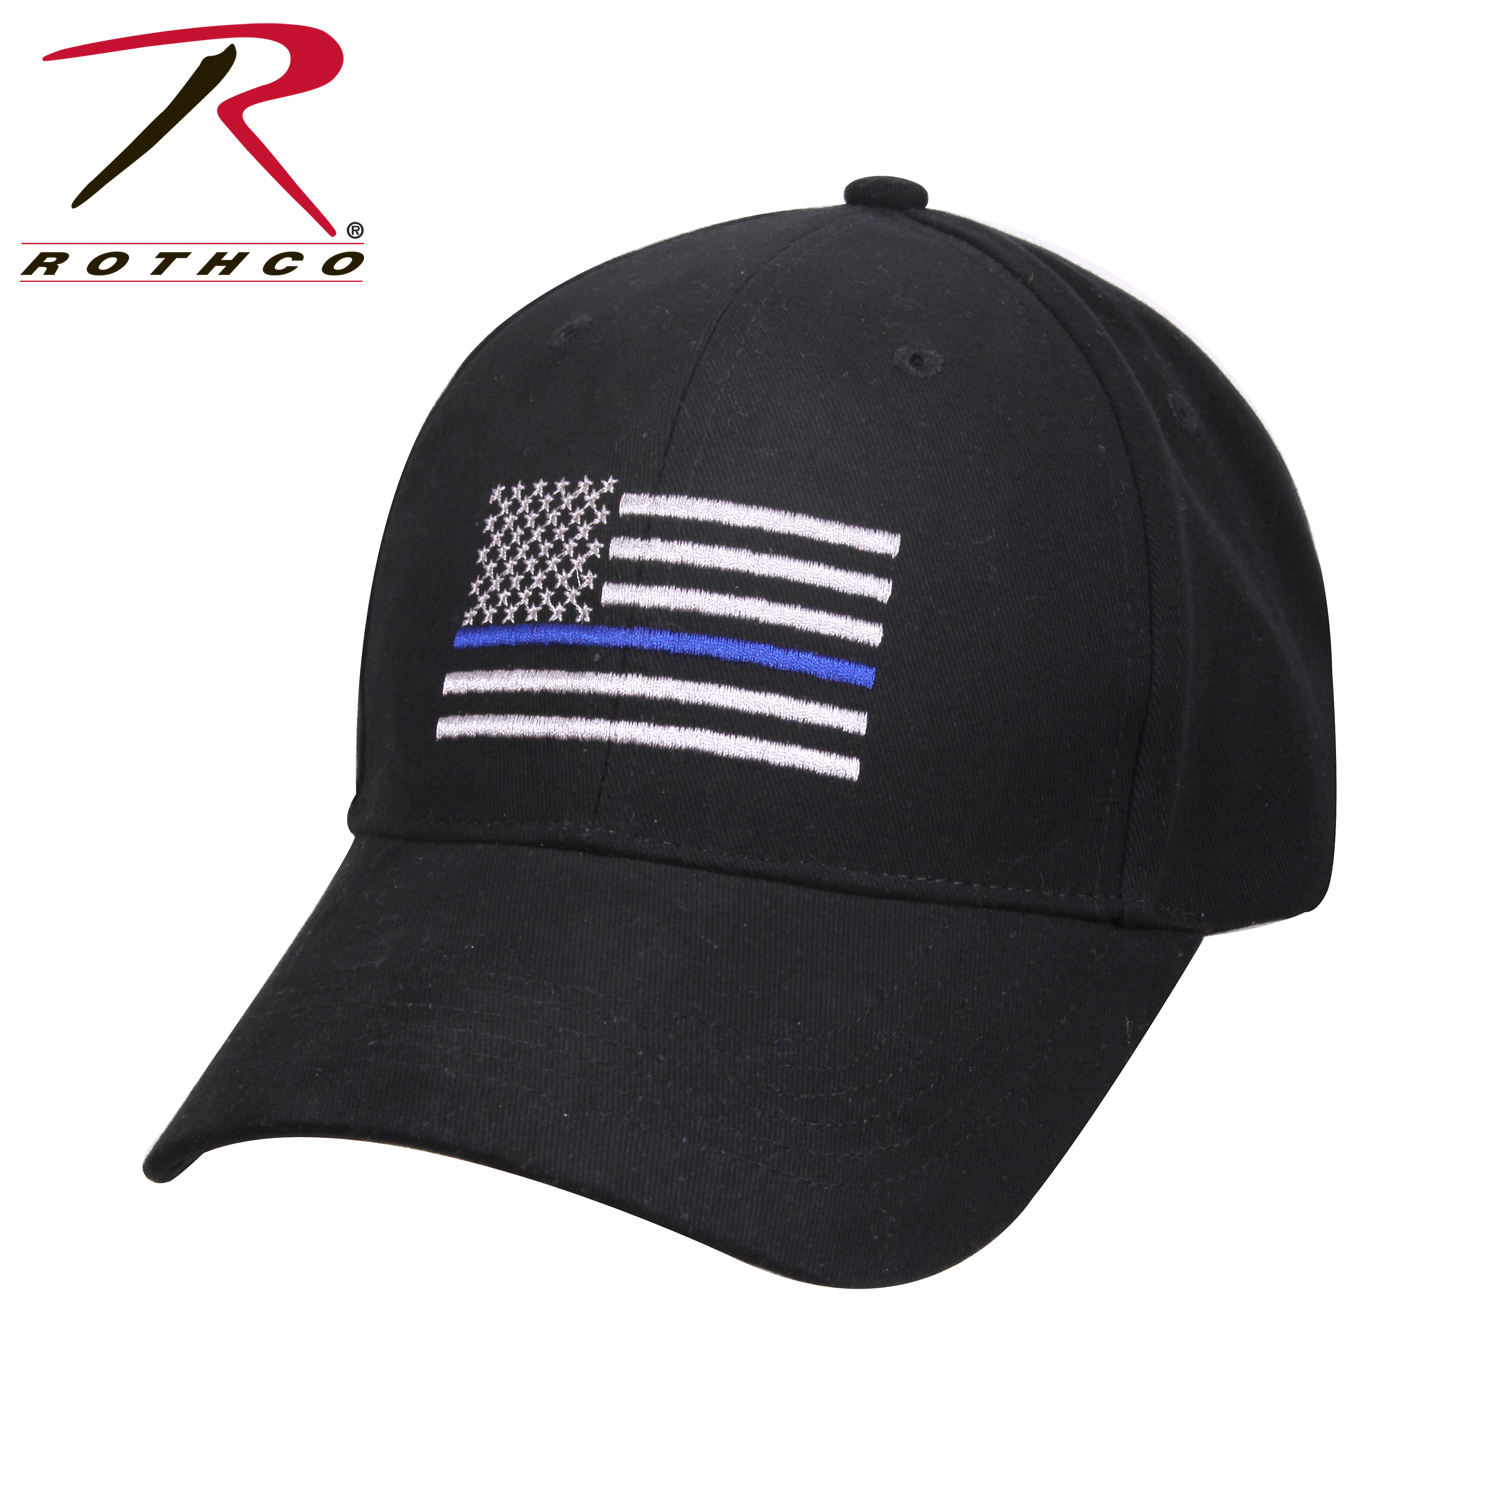 Cap-Black with Thin Blue Line Flag